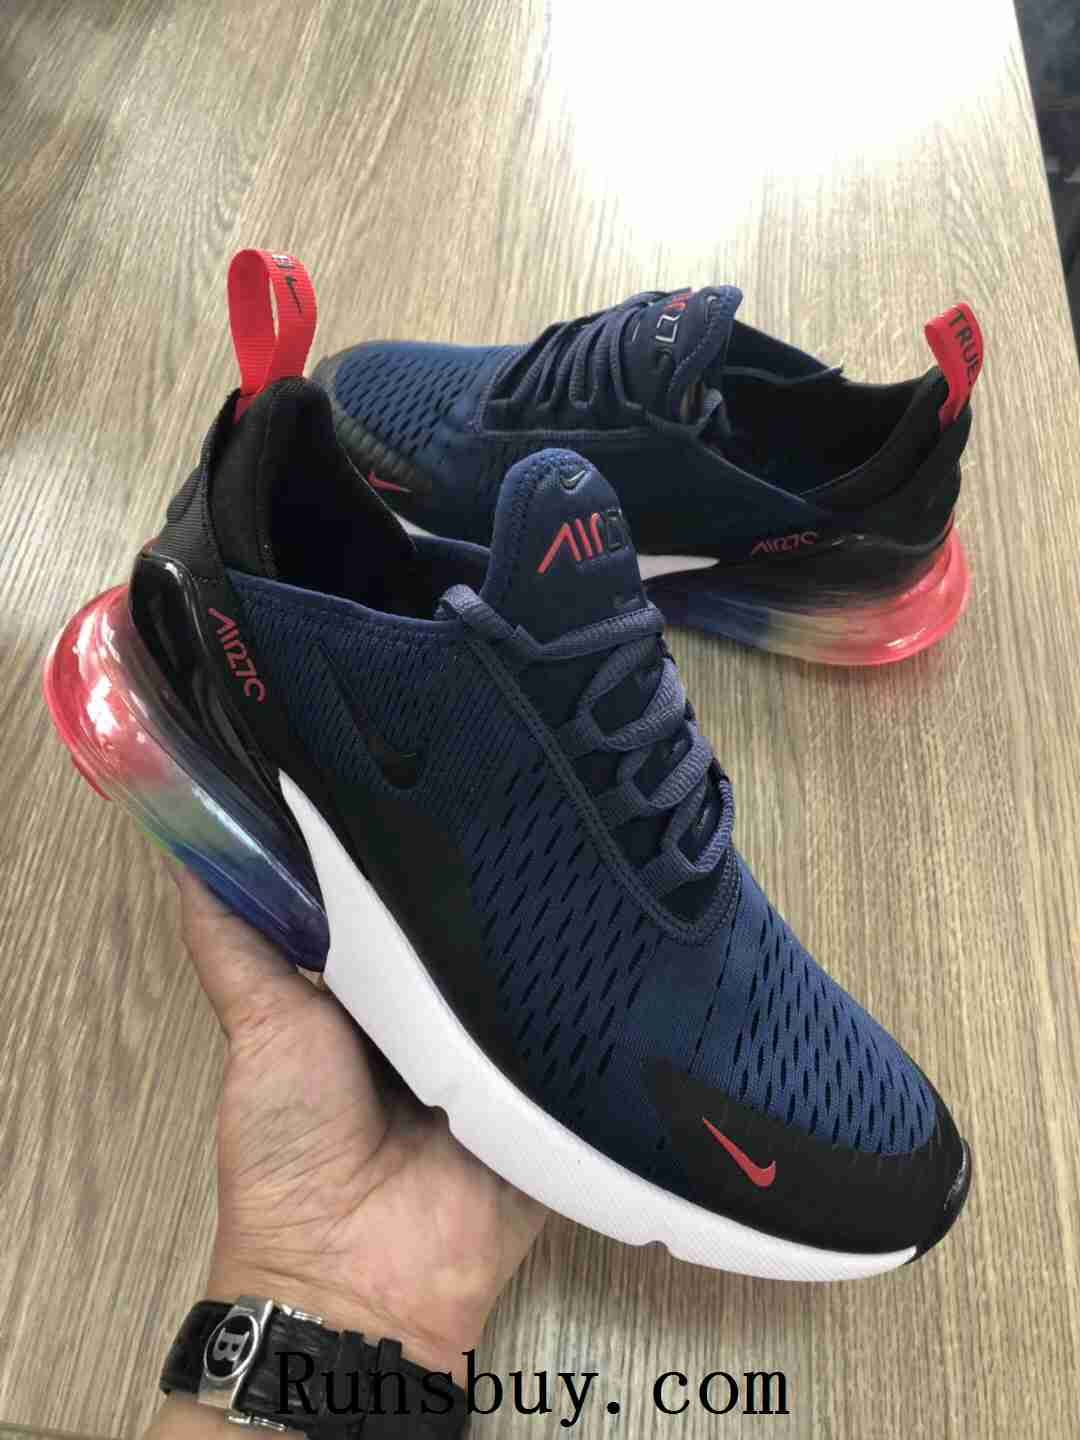 new styles 7130c 5b8ea Nike Air Max 270 Betrue Blue Black Rainbow Women Men Running Shoes